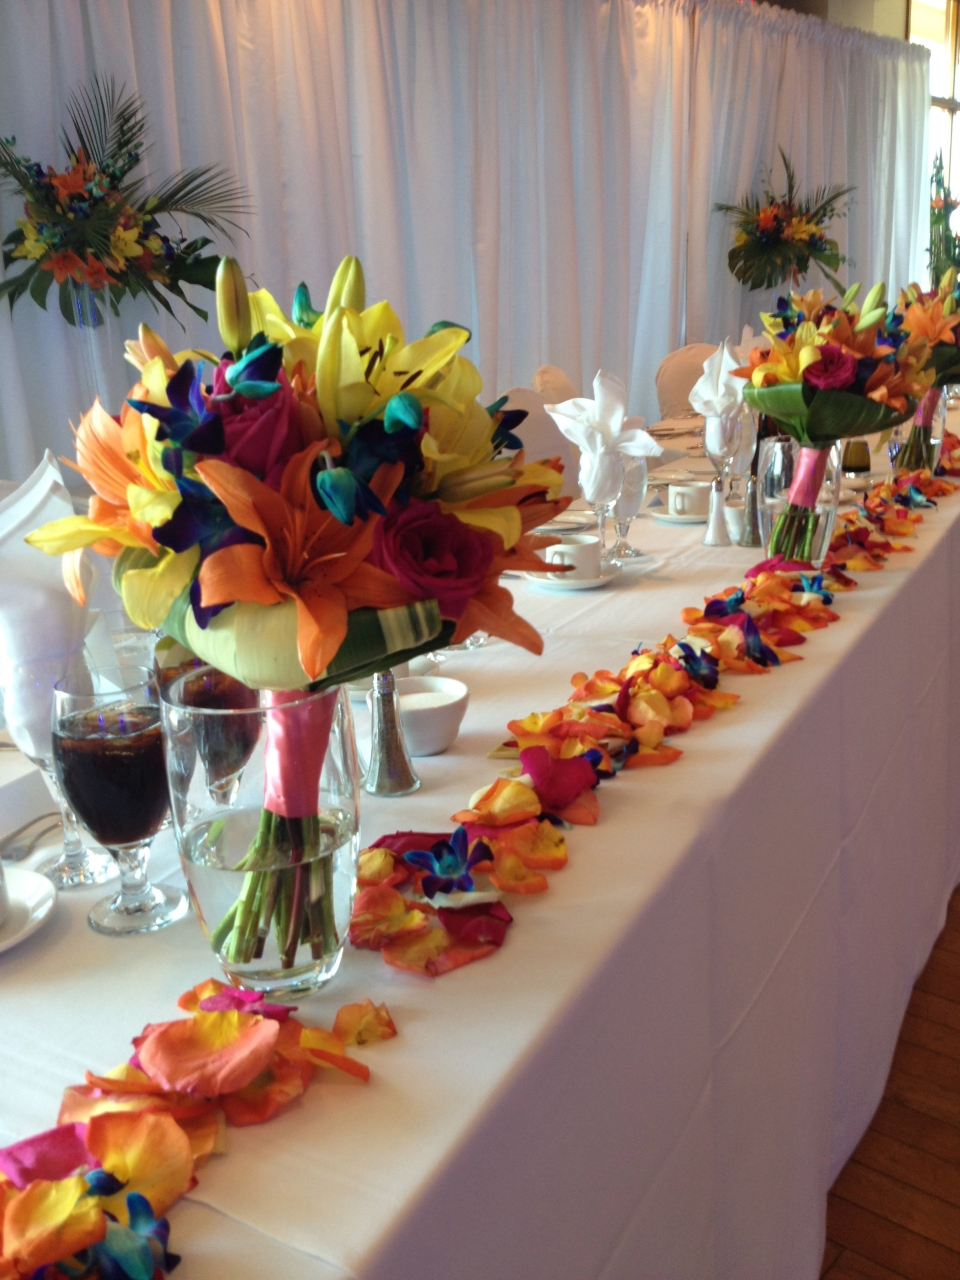 Tropical bouquets were used at the head table as additional decor